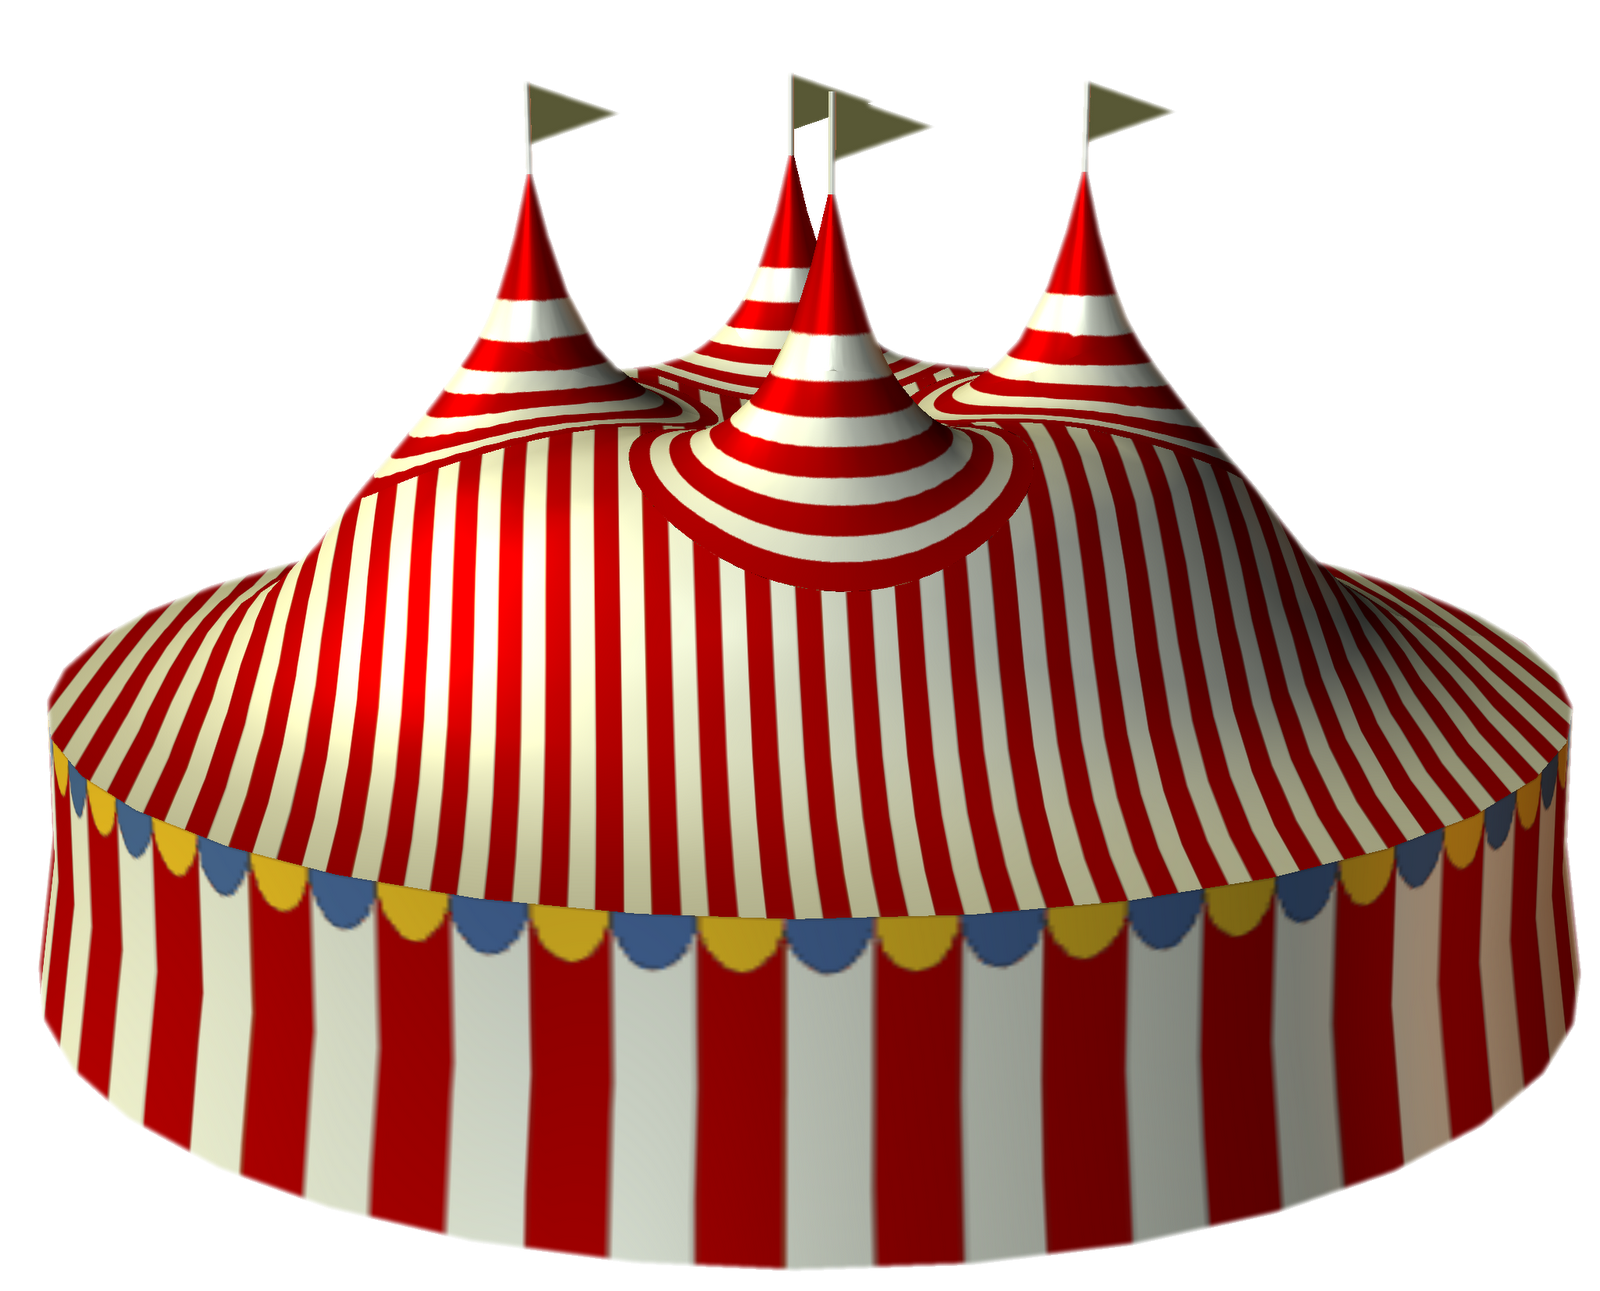 Circus graphics clipart vector freeuse Free High Resolution graphics and clip art: circus graphics high ... vector freeuse